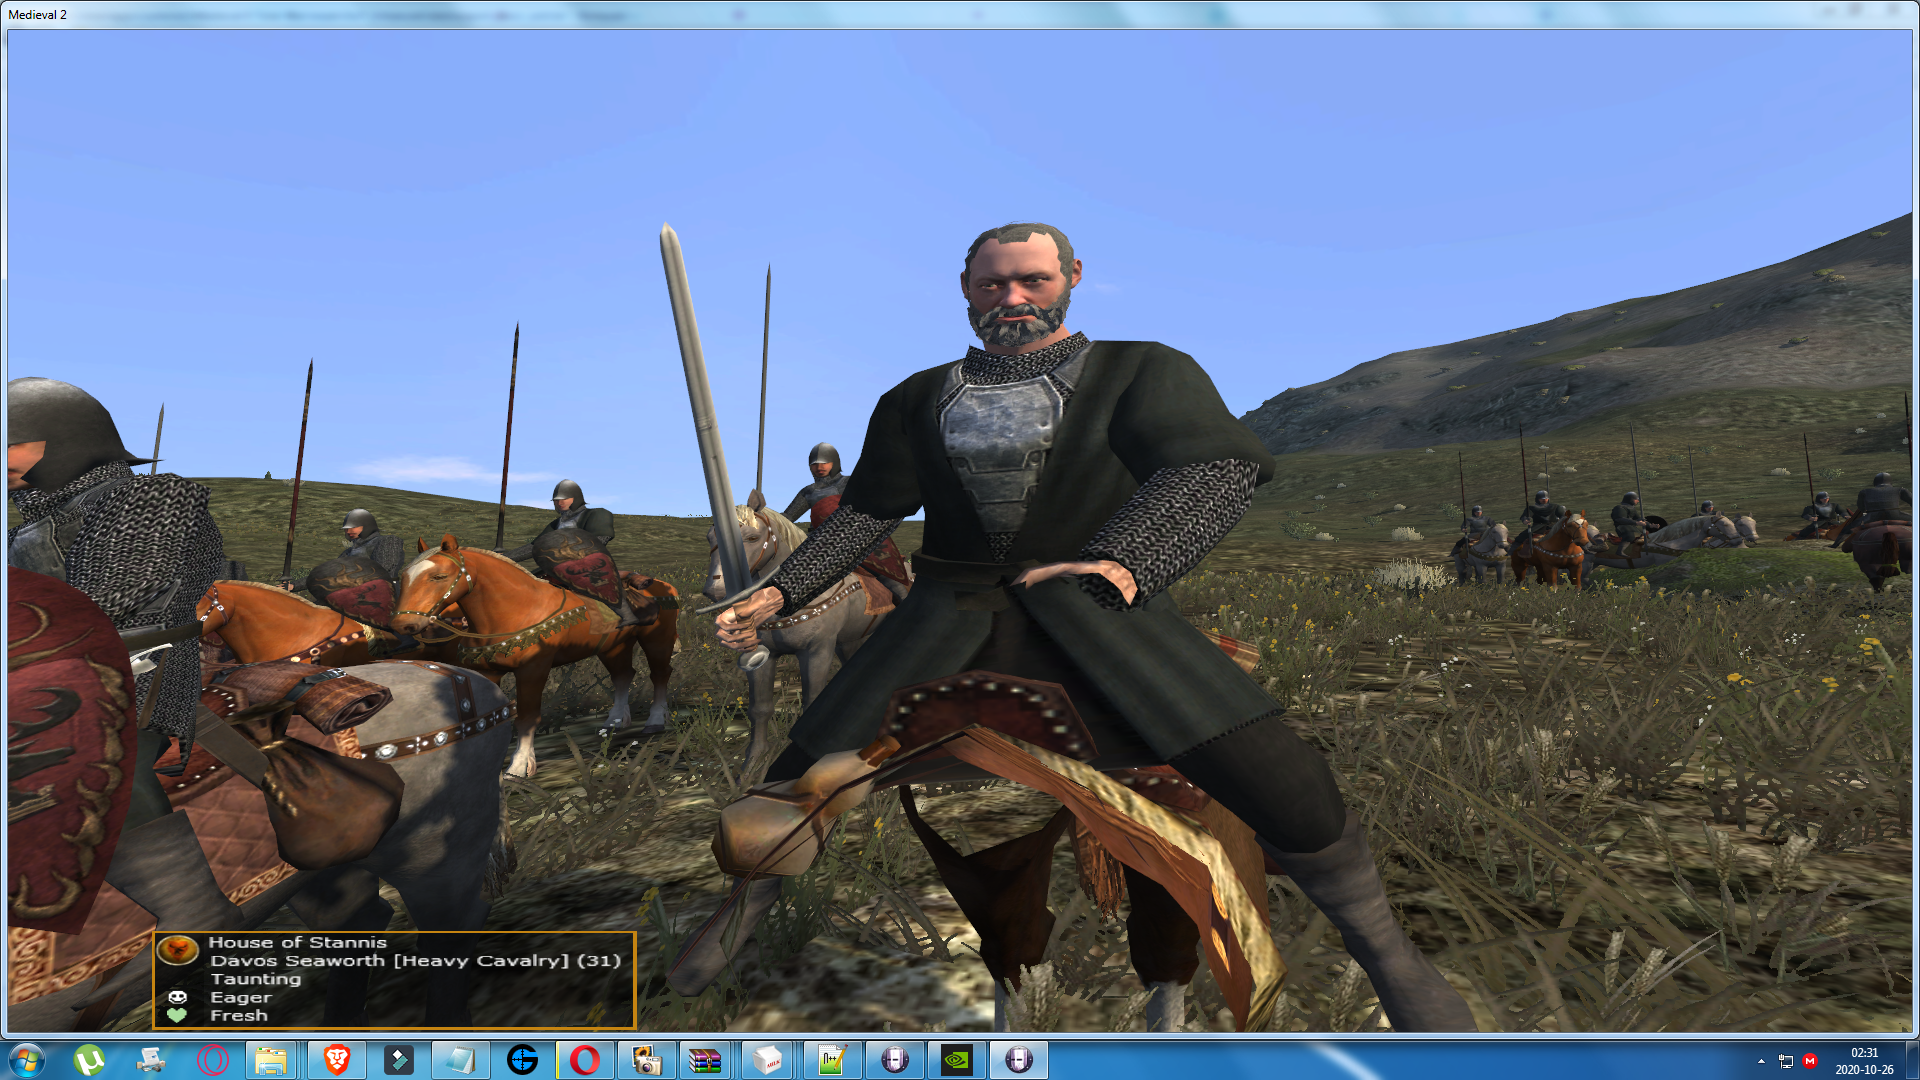 Sir Davos Seaworth has been added as a new custom hero!